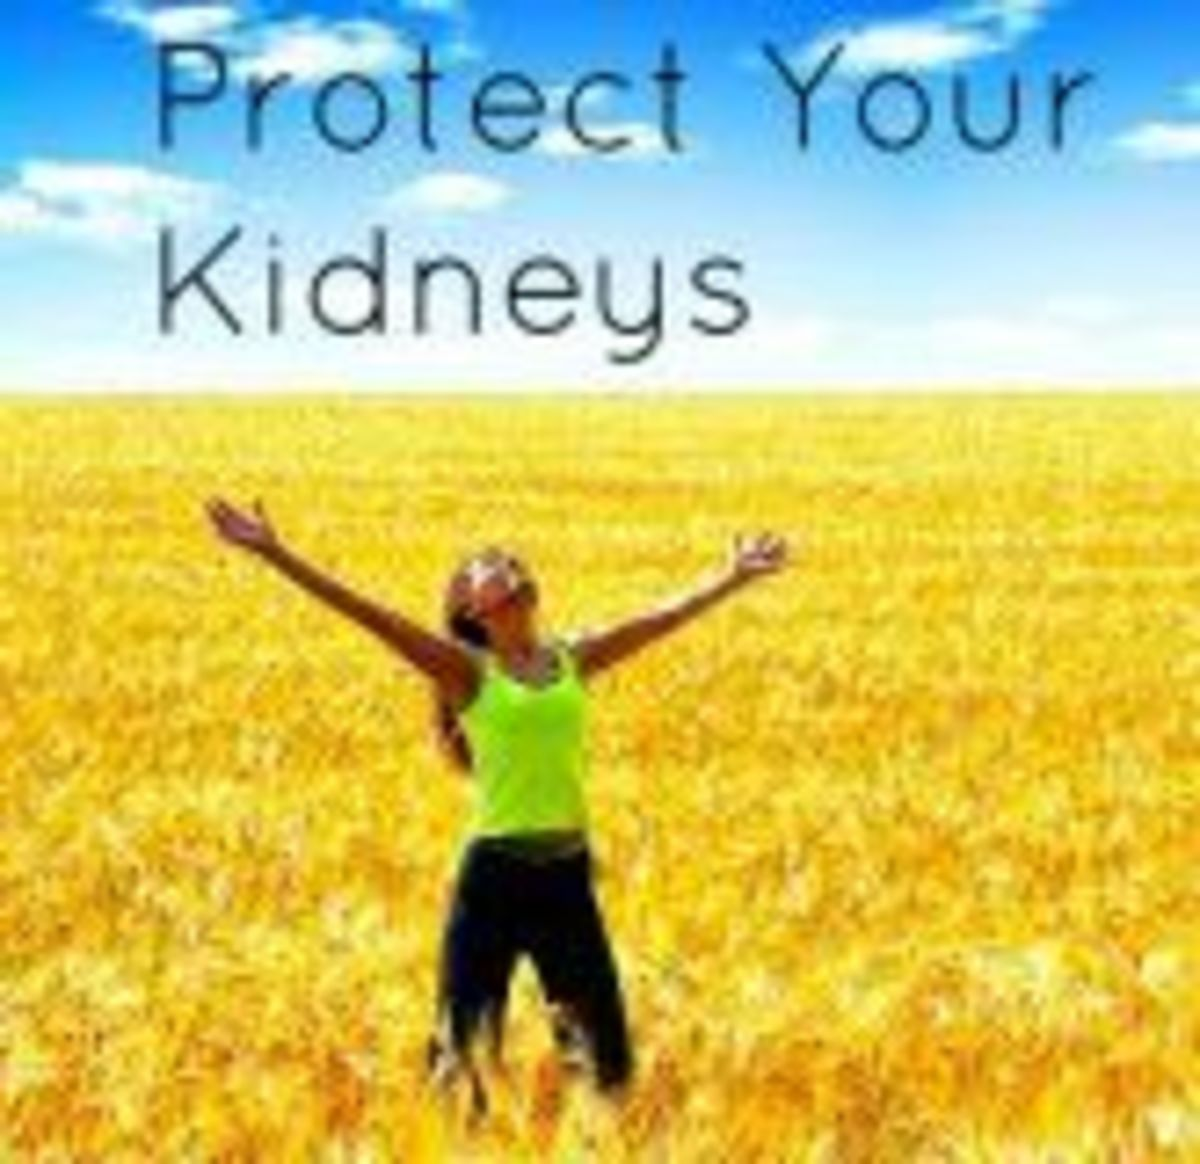 12 Symptoms of Kidney Disease